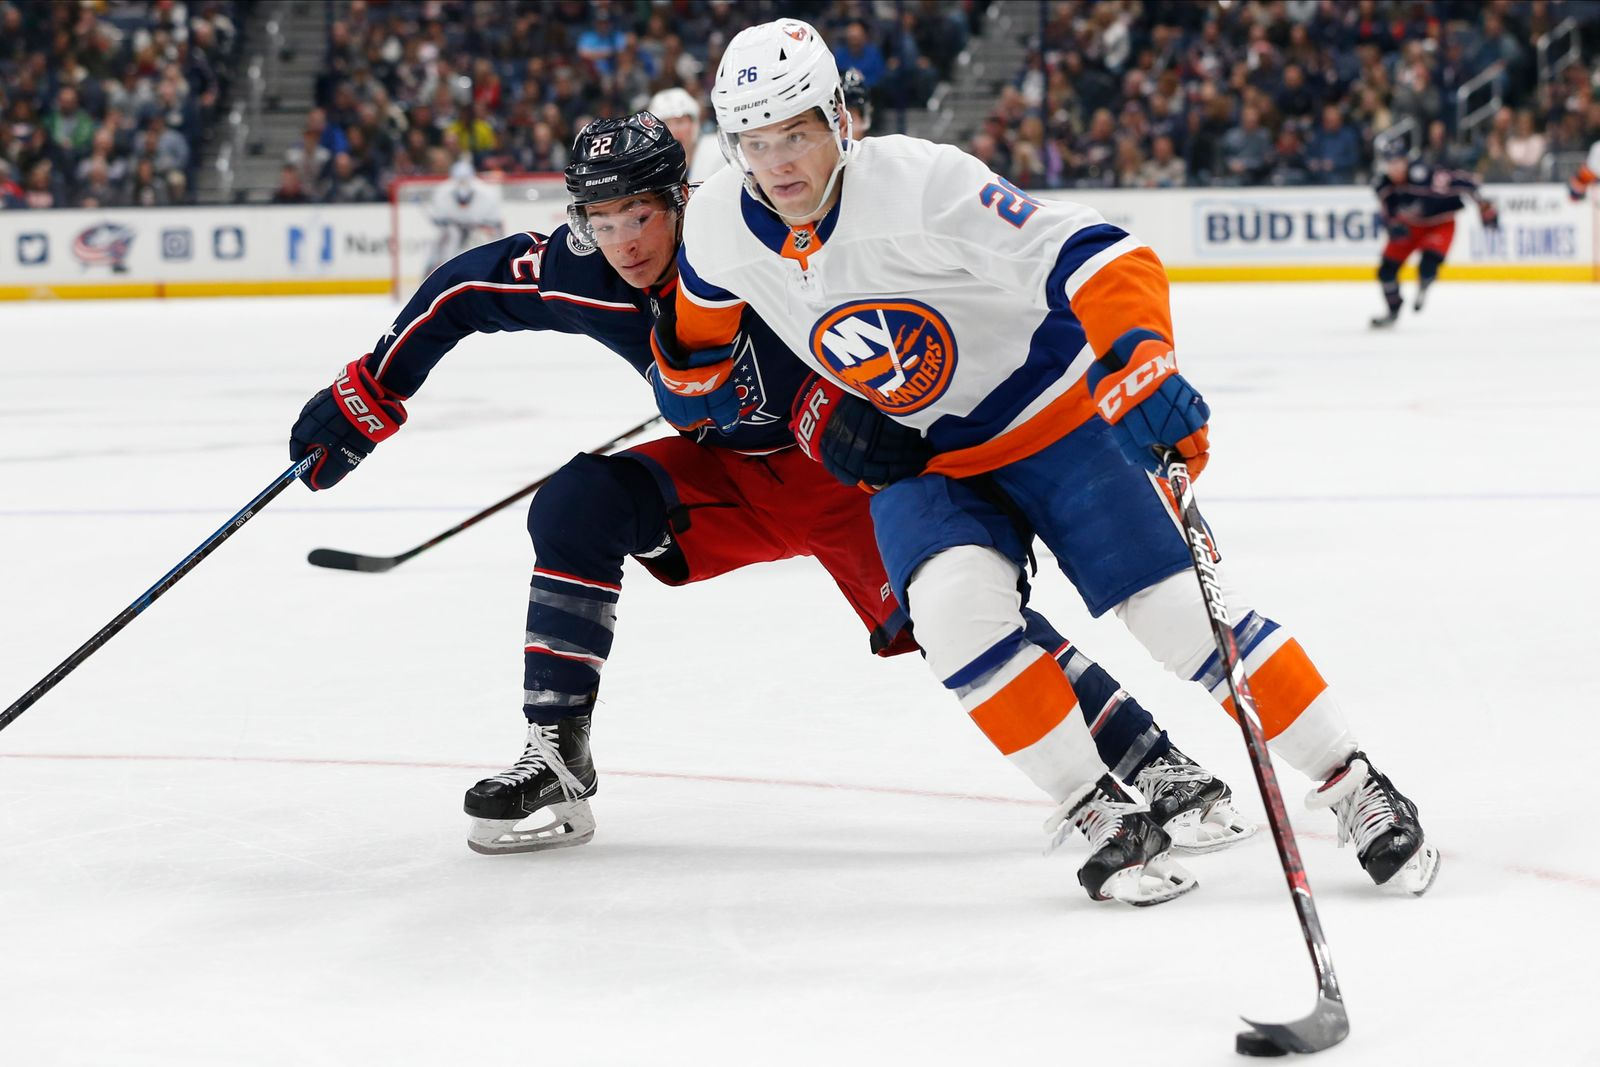 New York Islanders' Oliver Wahlstrom, right, carries the puck past Columbus Blue Jackets' Sonny Milano during the first period of an NHL hockey game Saturday, Oct. 19, 2019, in Columbus, Ohio. (AP Photo/Jay LaPrete)